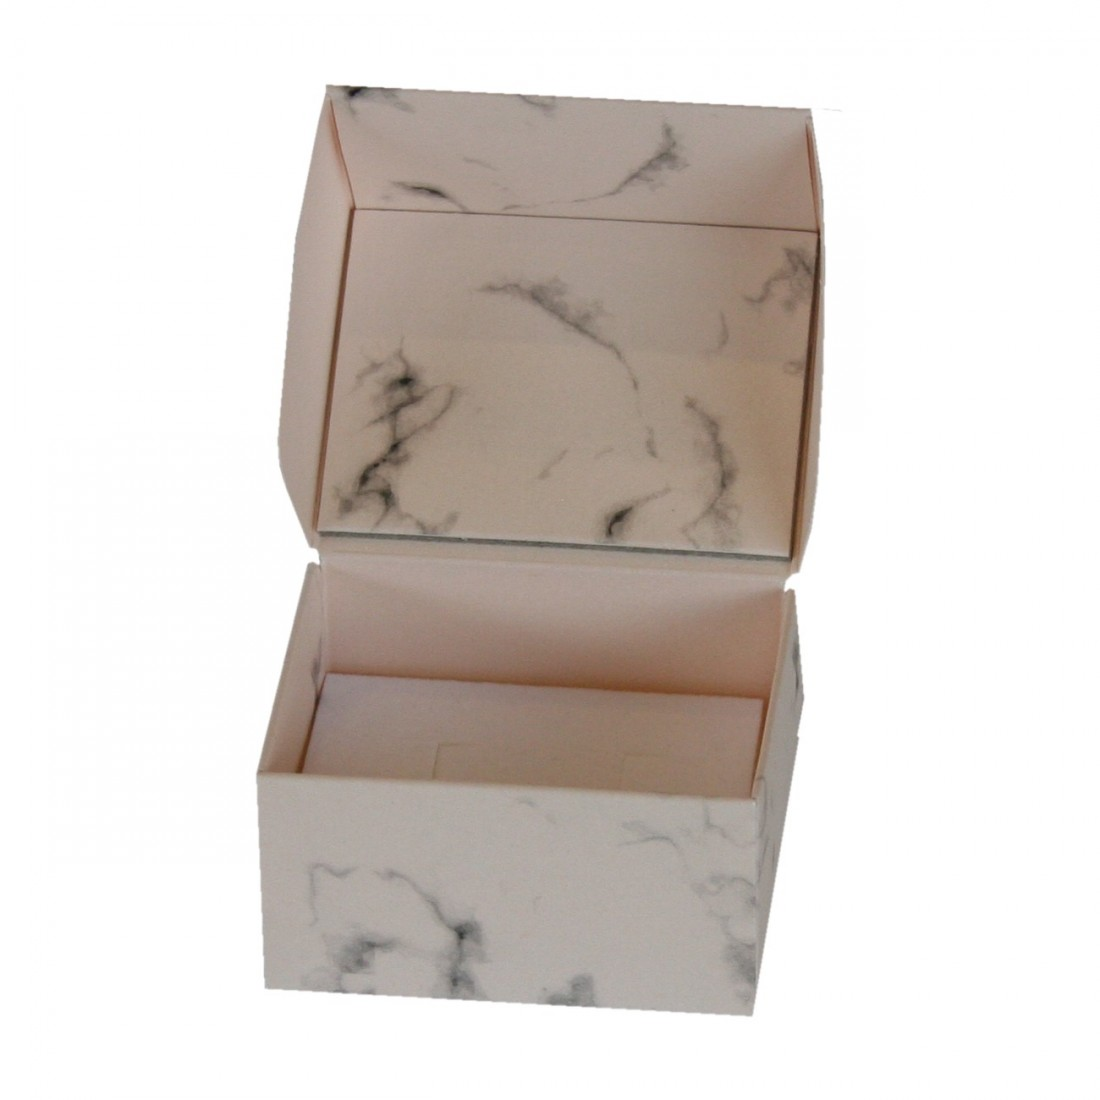 Cardboard jewellery box marble pinted in pink, for ring or earrings.